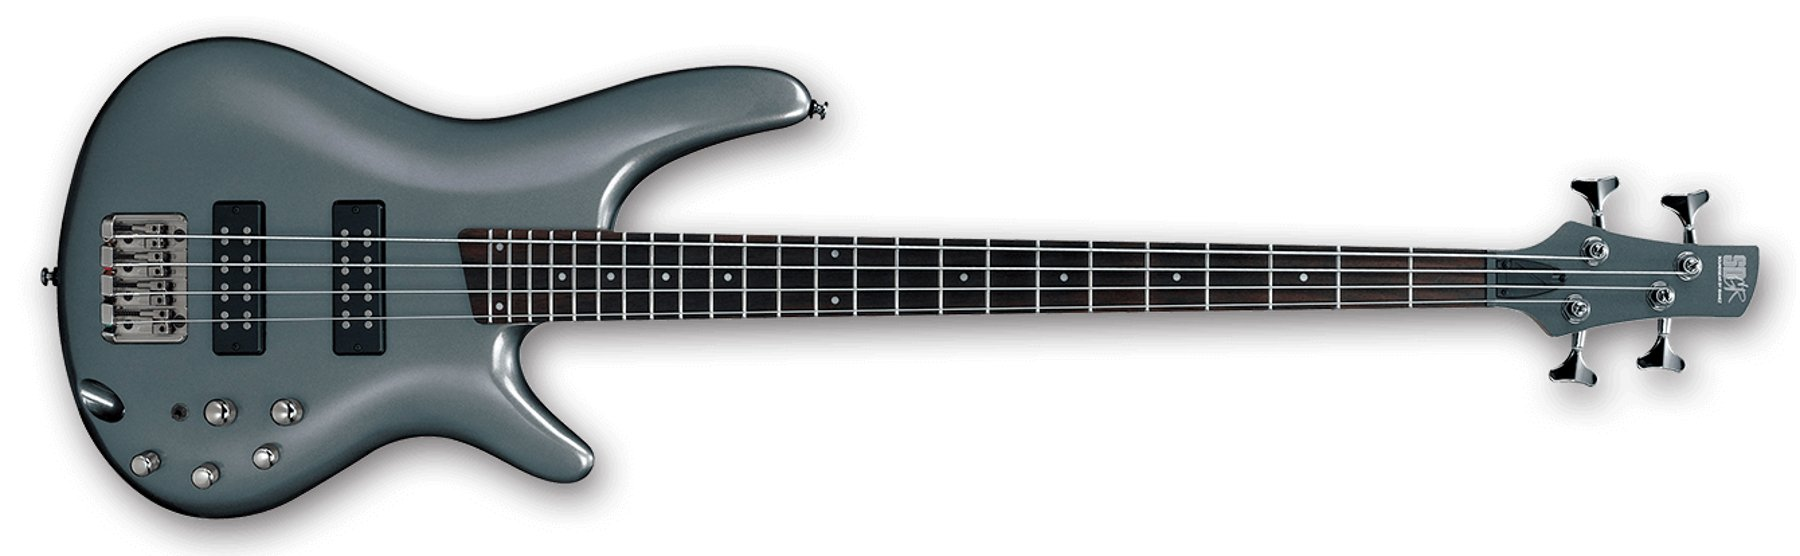 Bass Guitar, 4 String by Ibanez, SR300E | Full Compass Systems